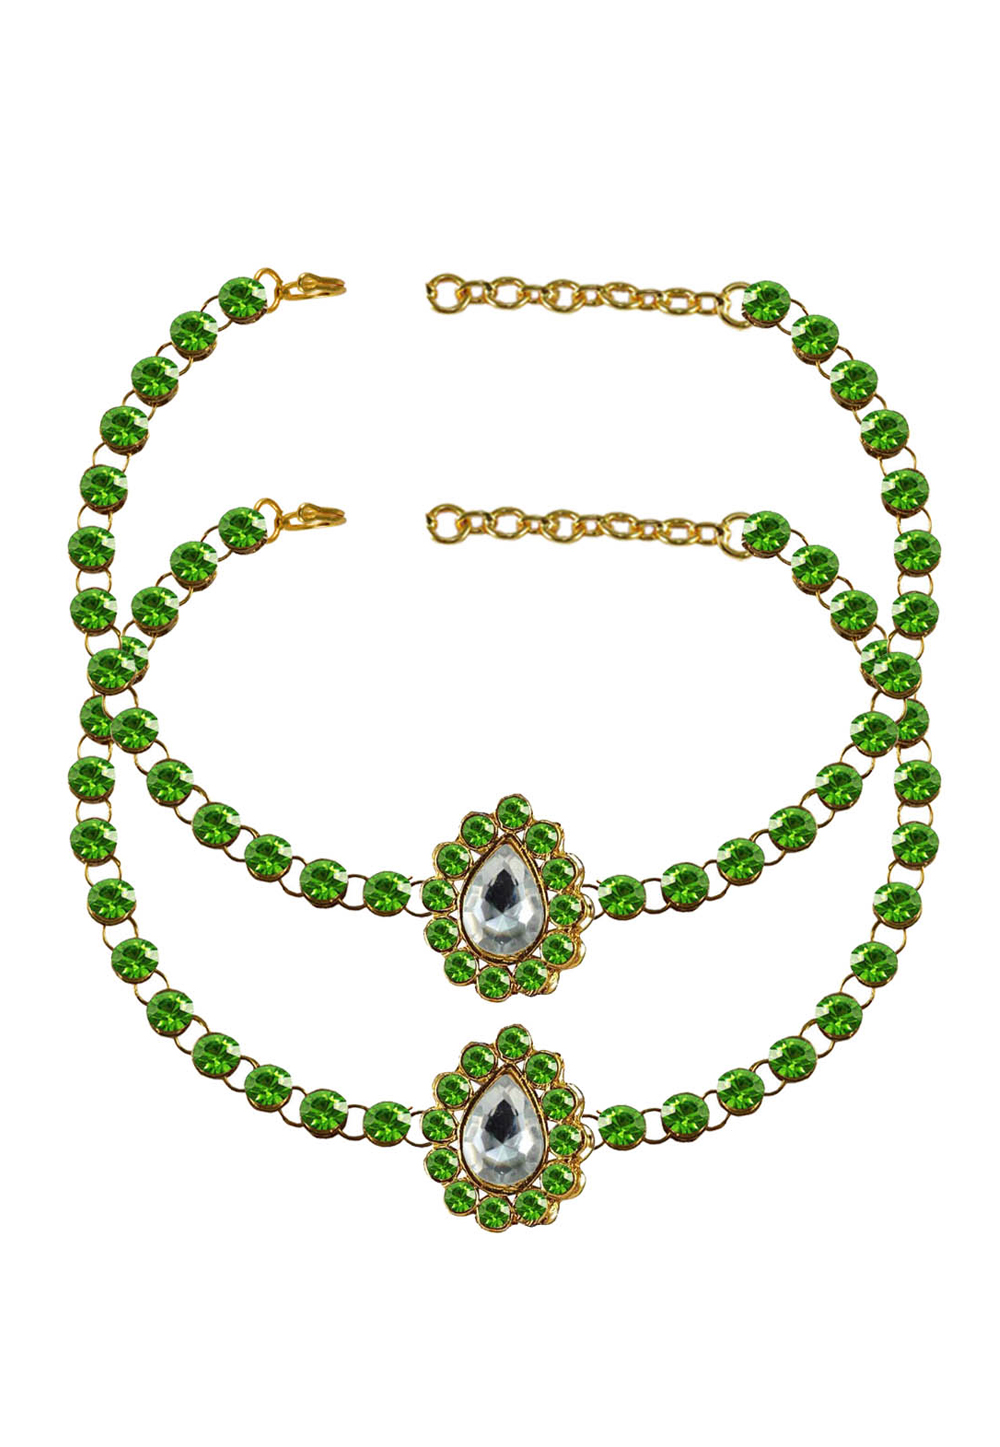 Green Brass Gold Plated Anklets 171323